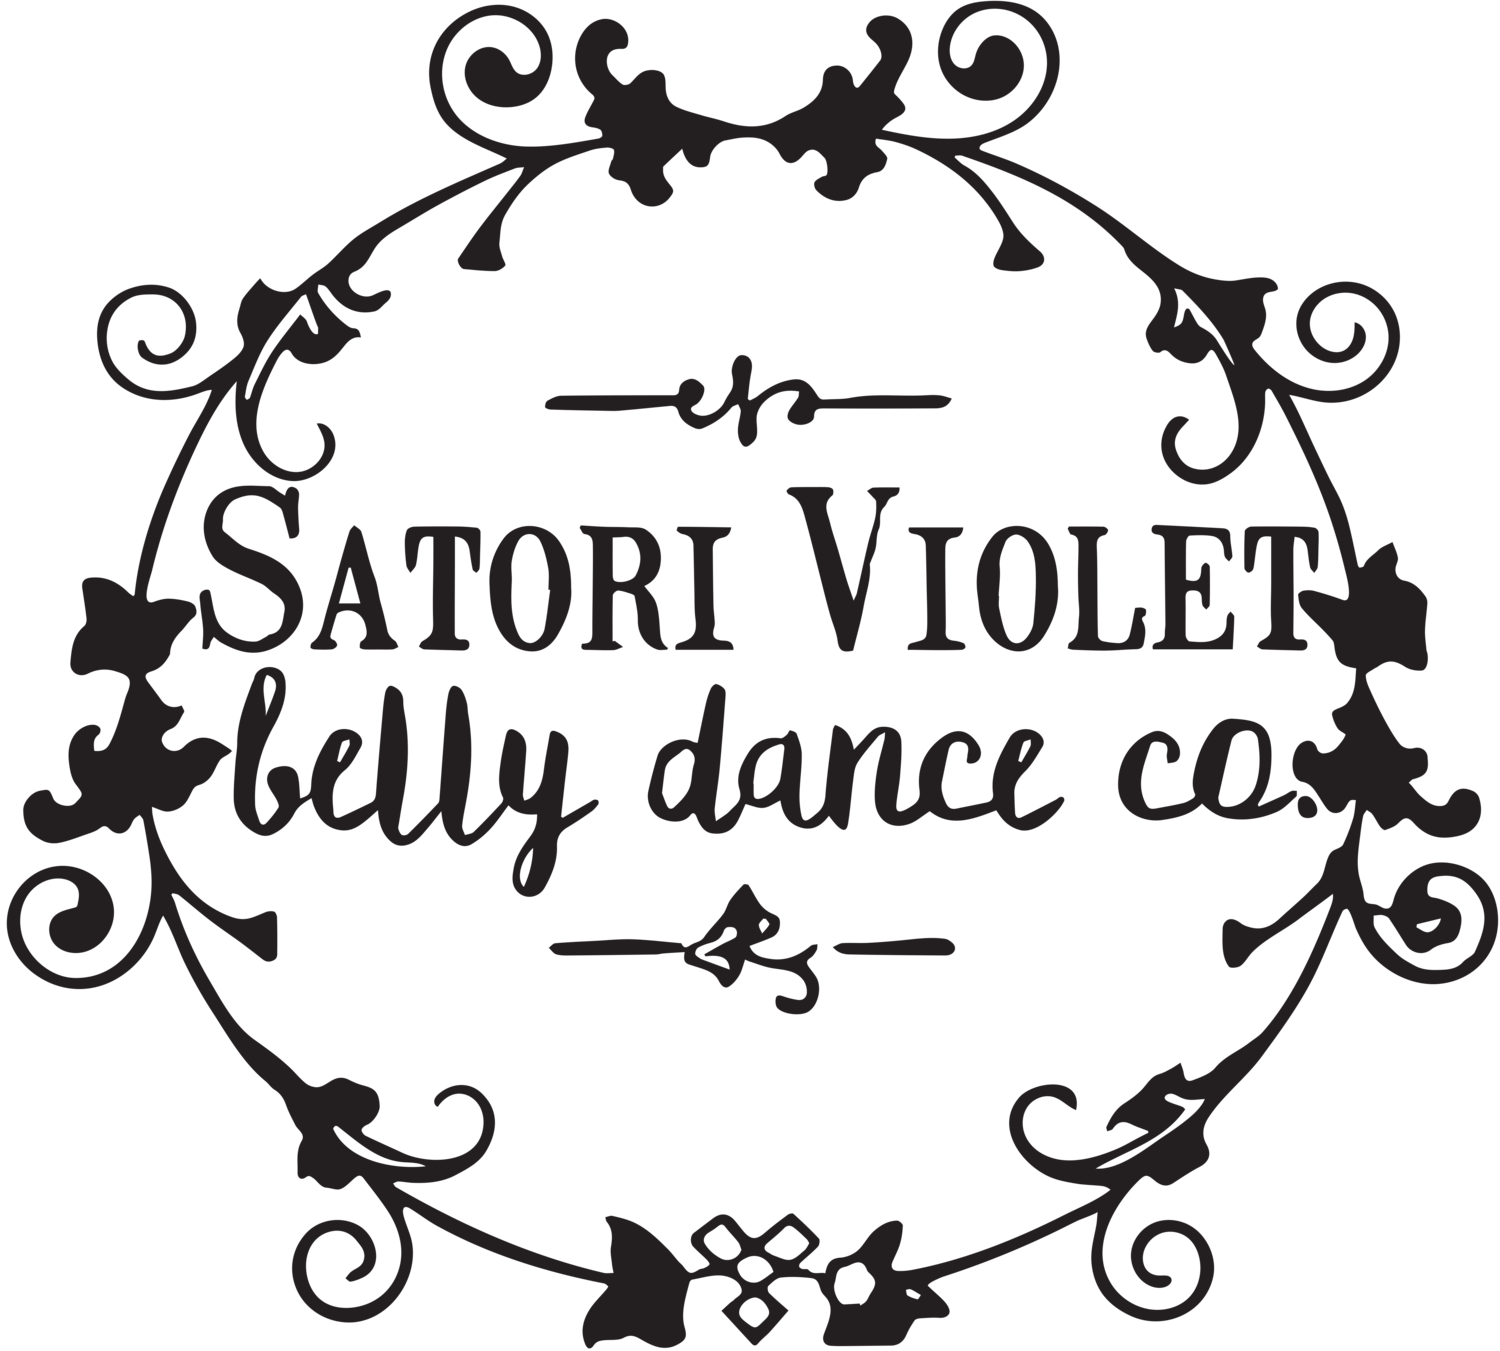 Satori Violet Belly Dance Co.